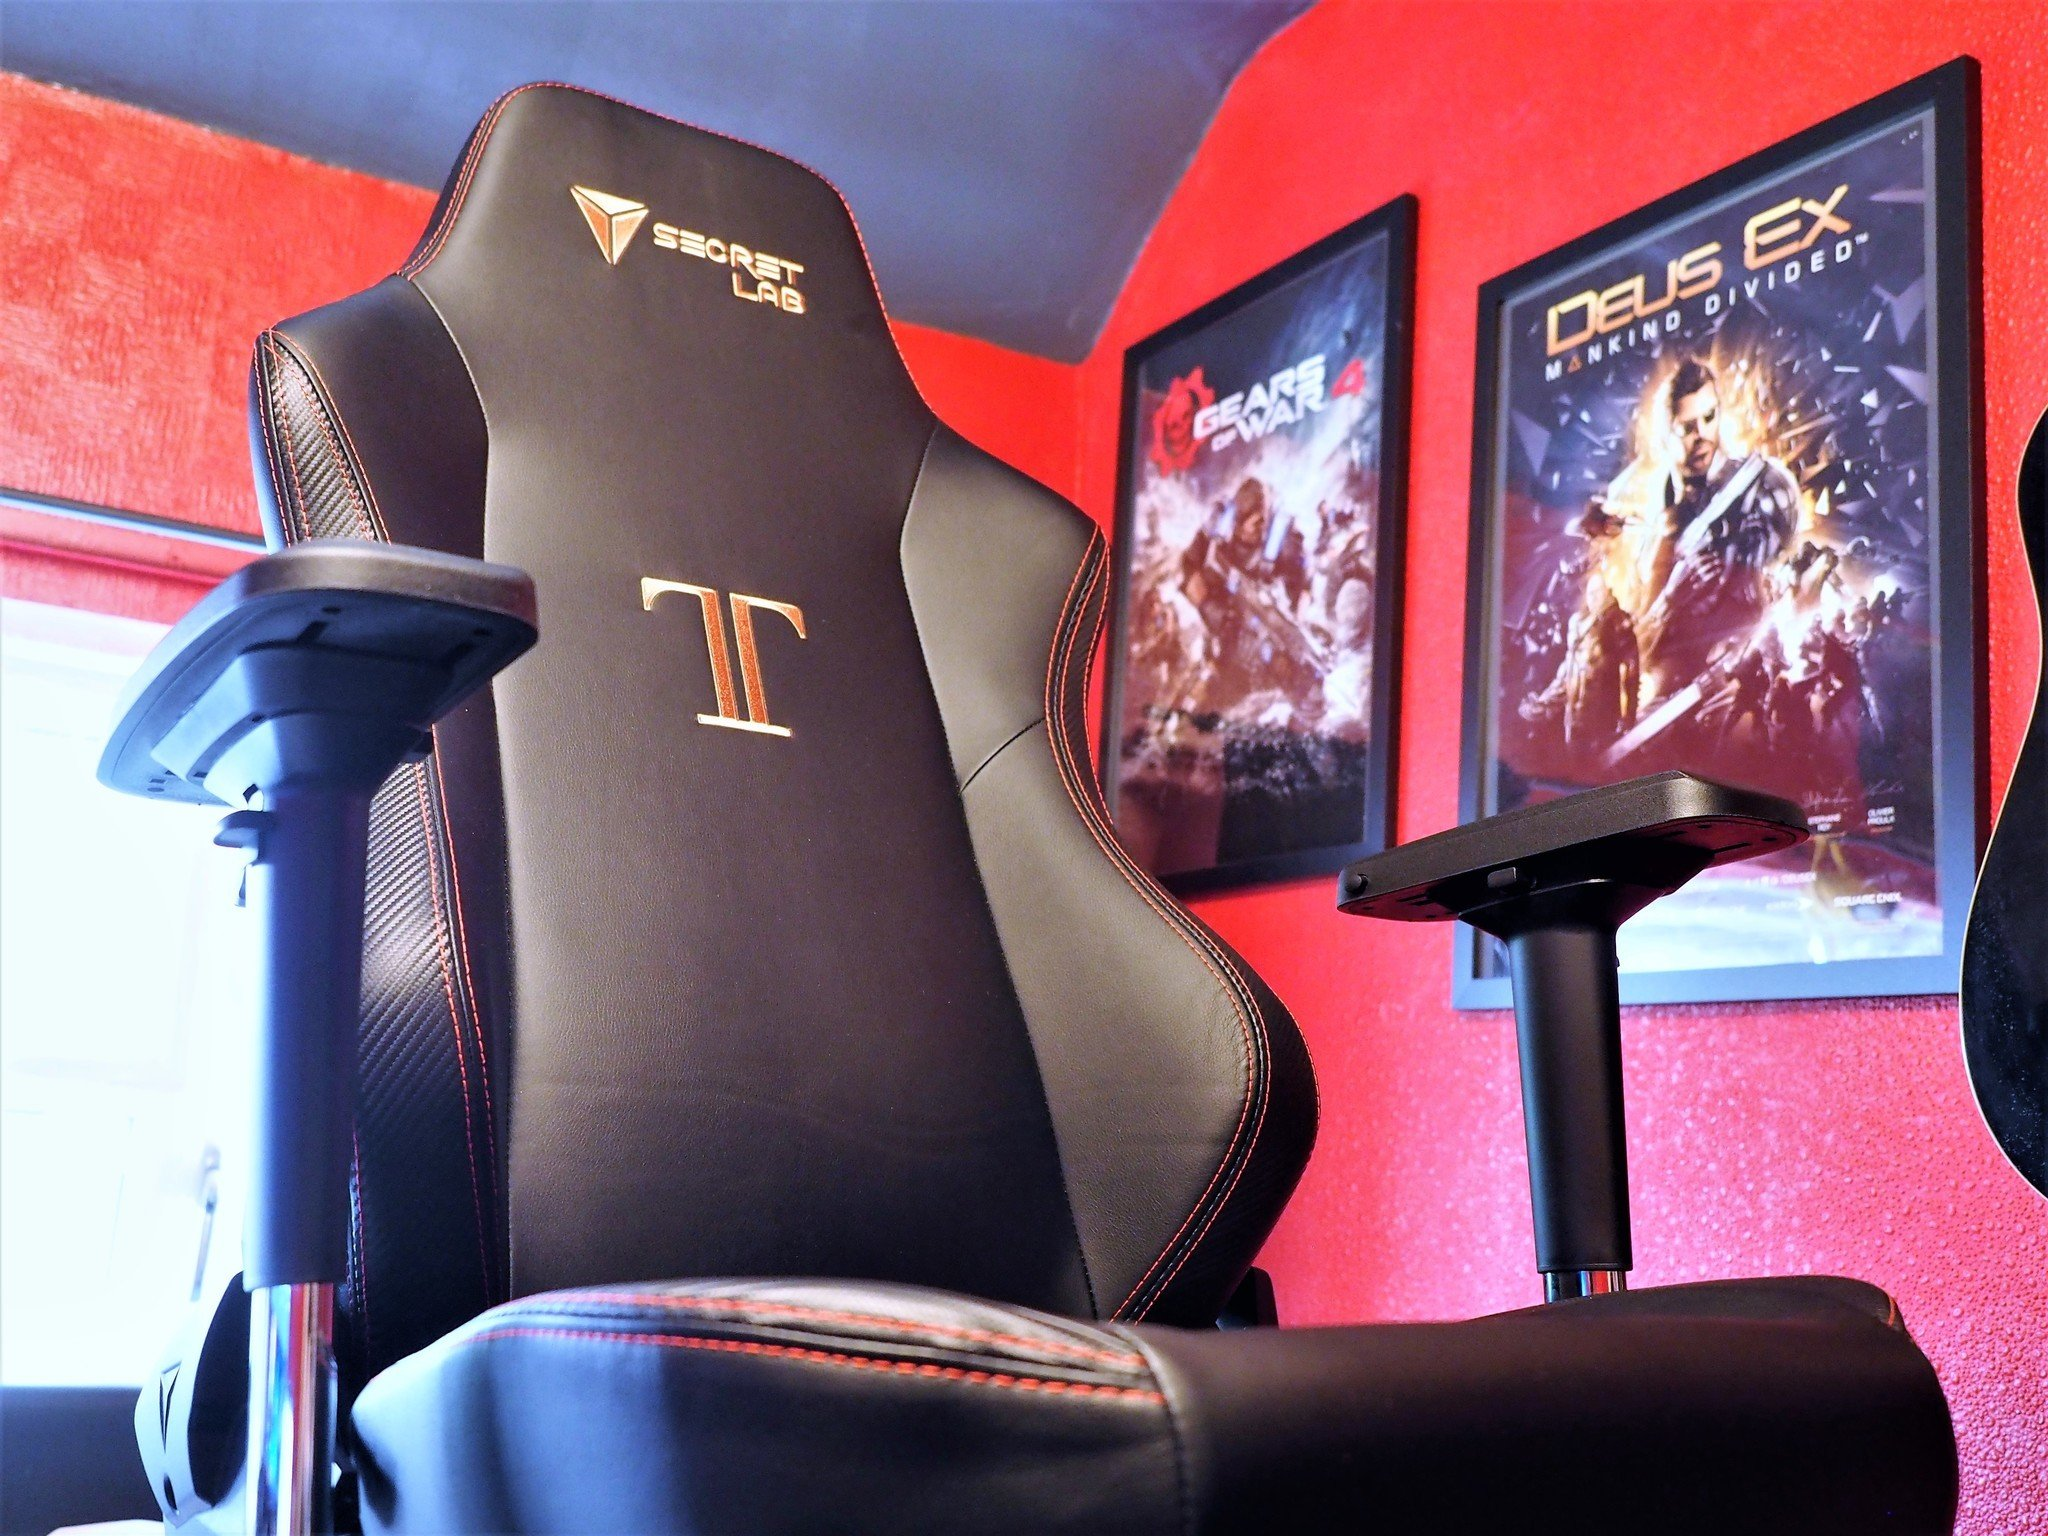 Secretlabs Titan gaming chair review A truly luxurious